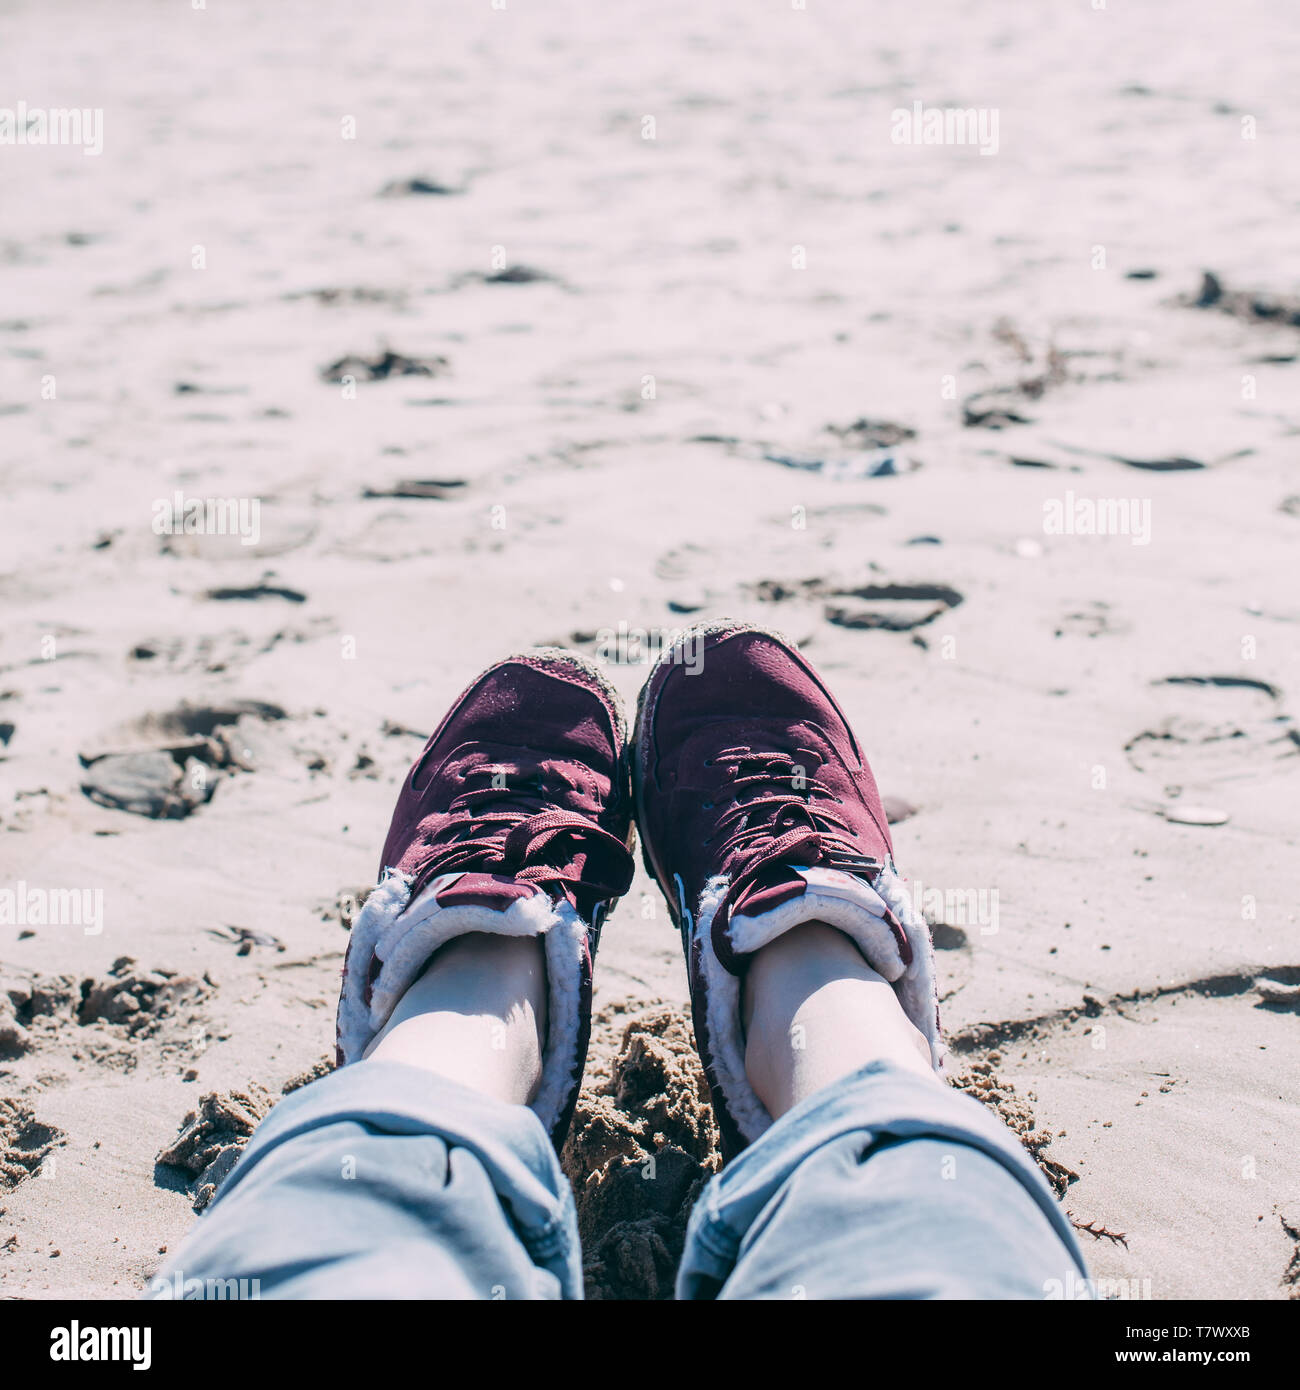 Relax On Beach Quotes High Resolution Stock Photography And Images Alamy